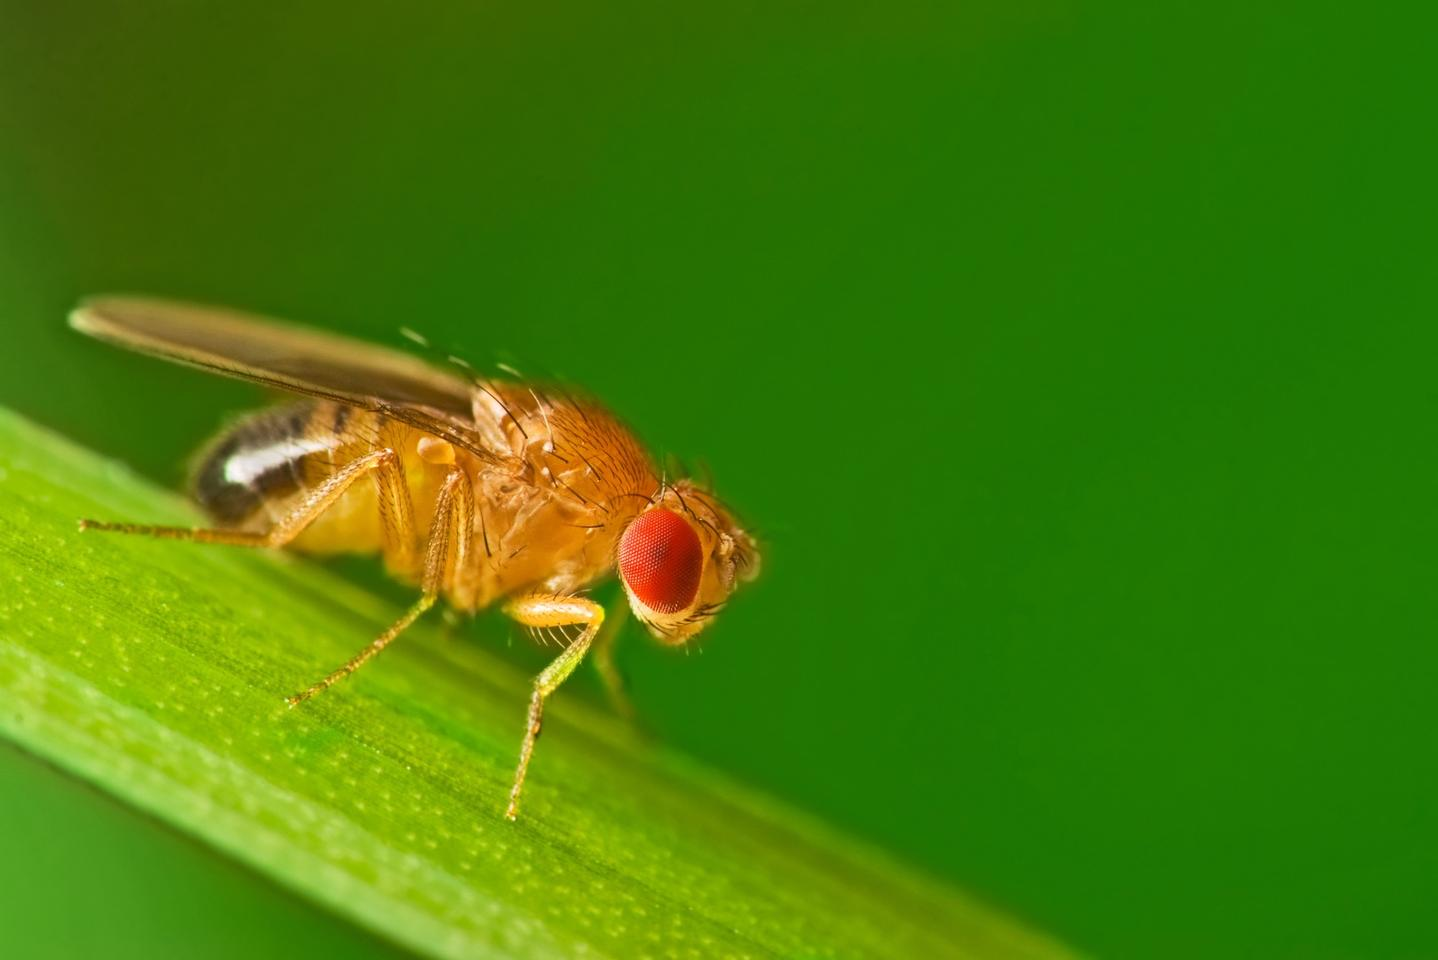 A study on fruit flies has significantly improved our understanding of Parkinson's disease